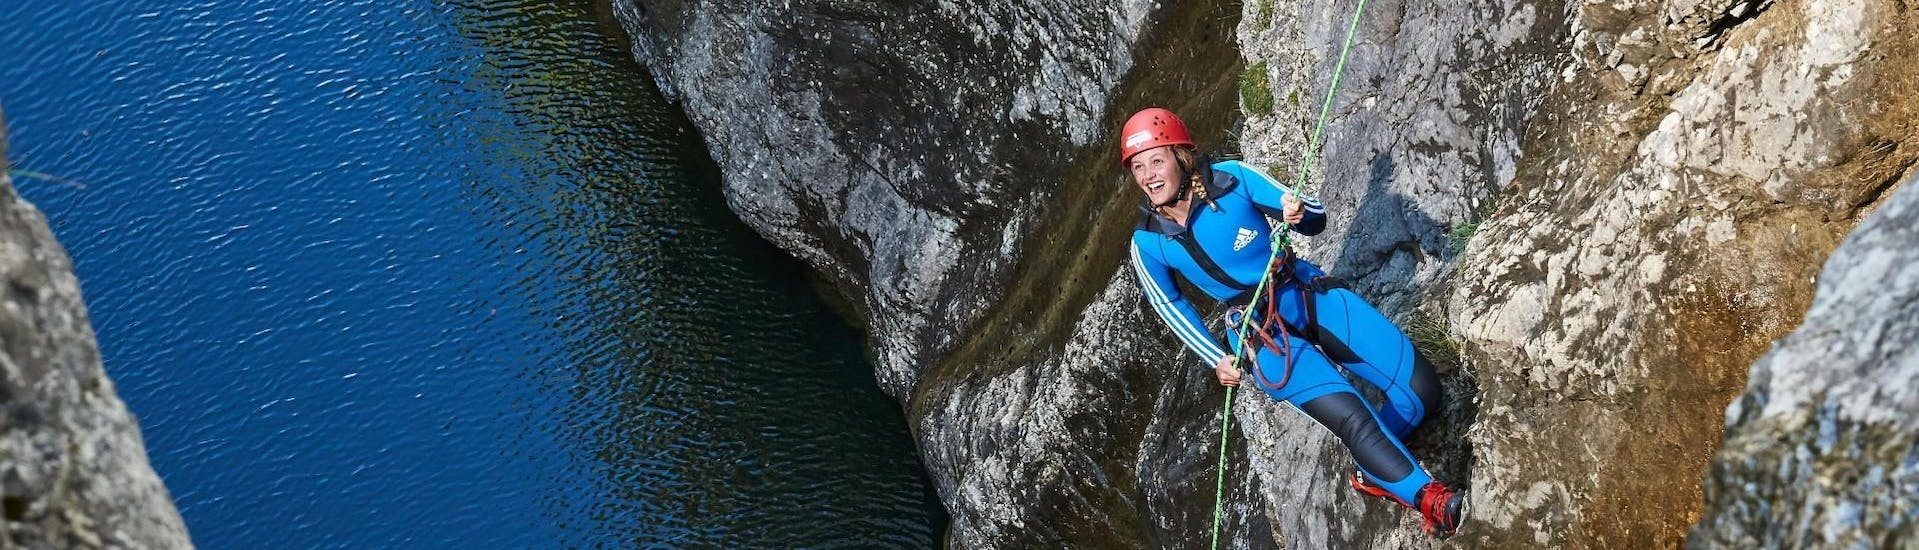 canyoning-for-beginners---hachleschlucht-faszinatour-hero